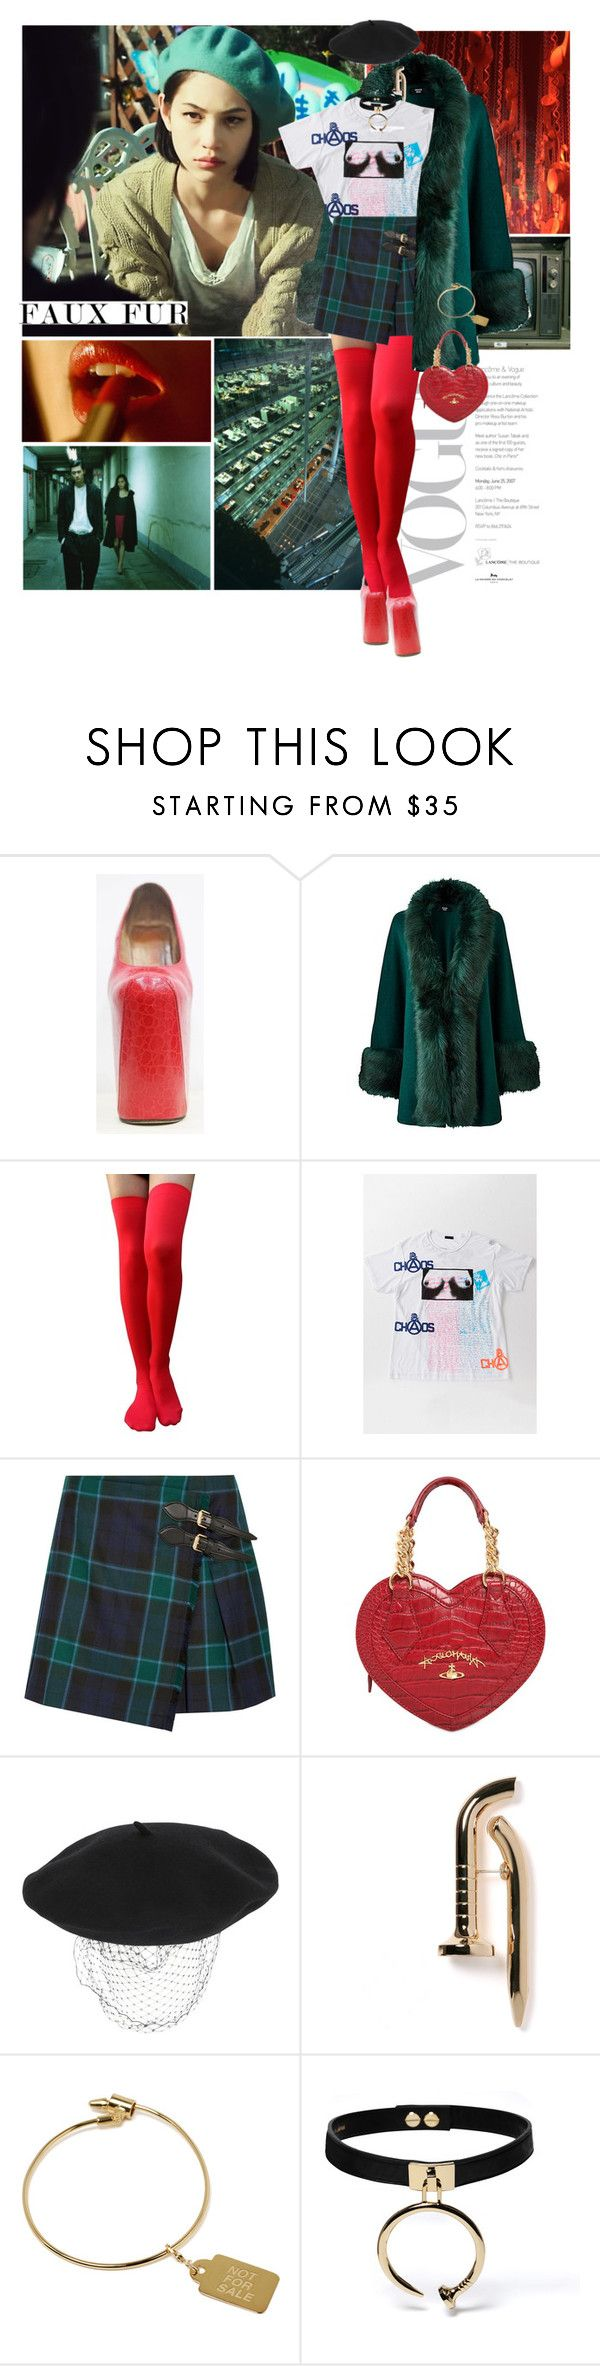 """""""Somehow I'm very happy"""" by gizibe ❤ liked on Polyvore featuring Burberry, Vivienne Westwood, Silver Spoon Attire and vintage"""